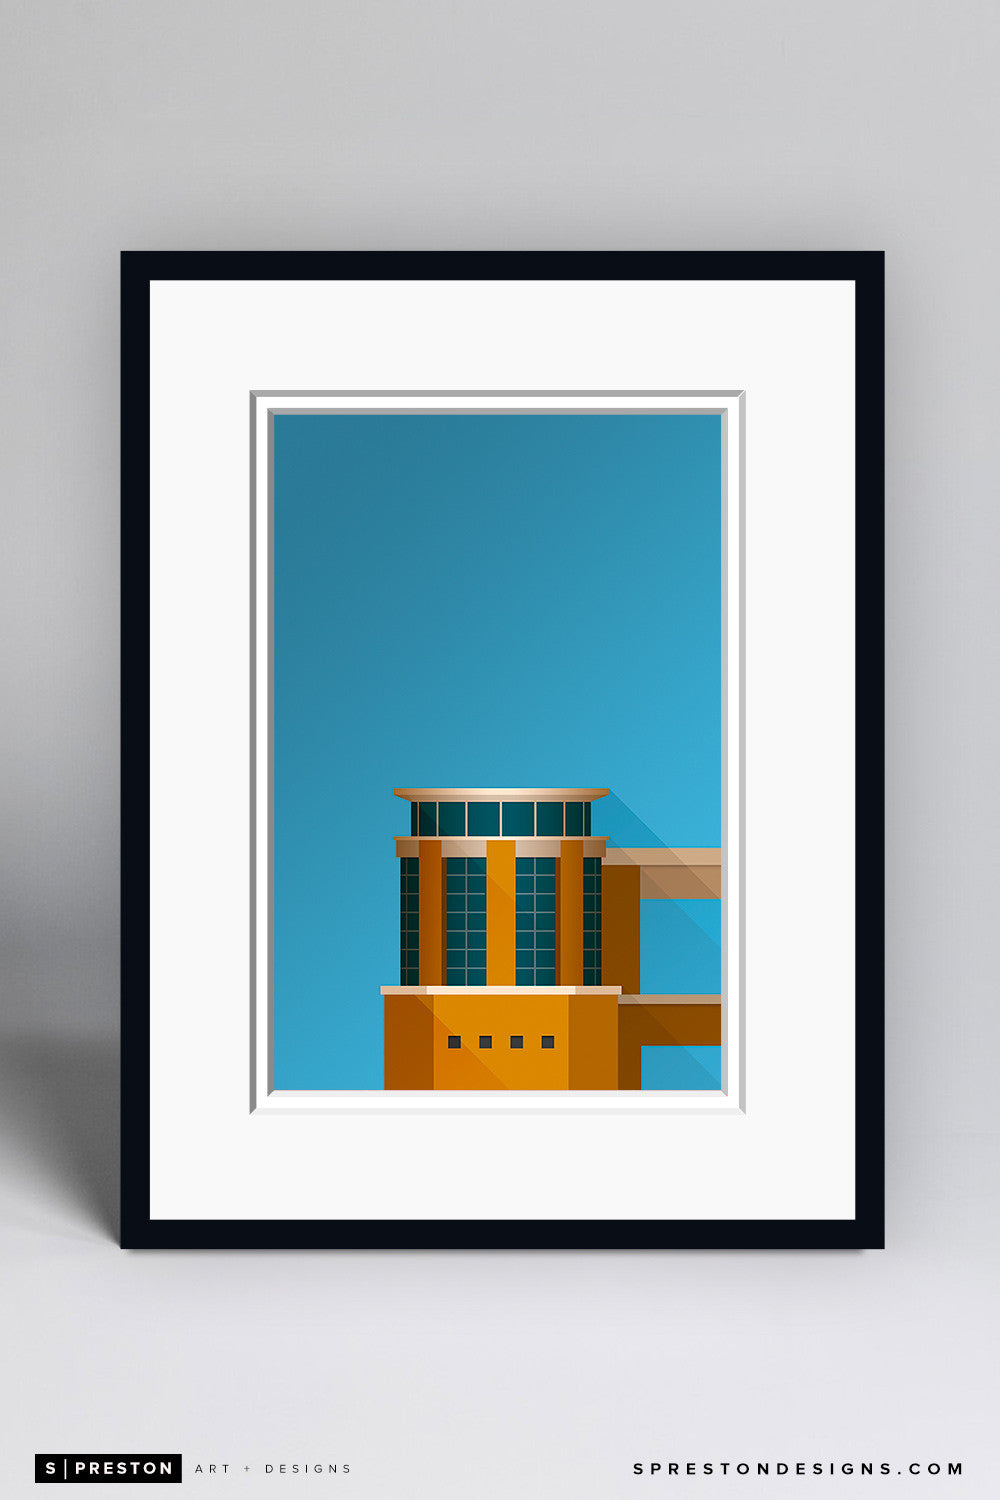 Minimalist Darrell K RoyalŠ—–Texas Memorial Stadium Art Print - University of Texas - S. Preston Art + Designs